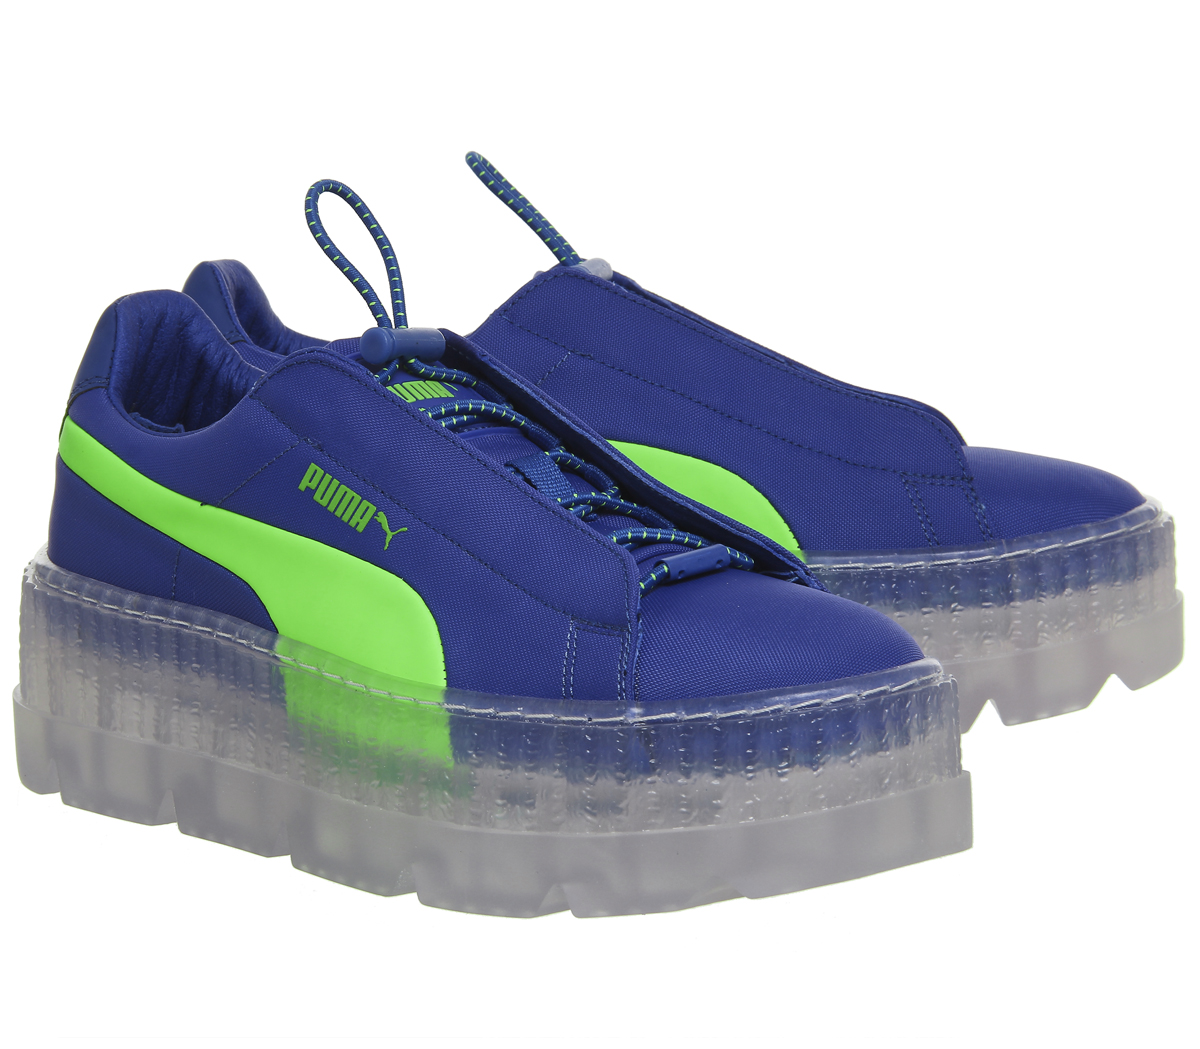 1884795c3ad Womens Puma Fenty Cleated Creepers SURF DAZZLING BLUE GREEN Trainers ...